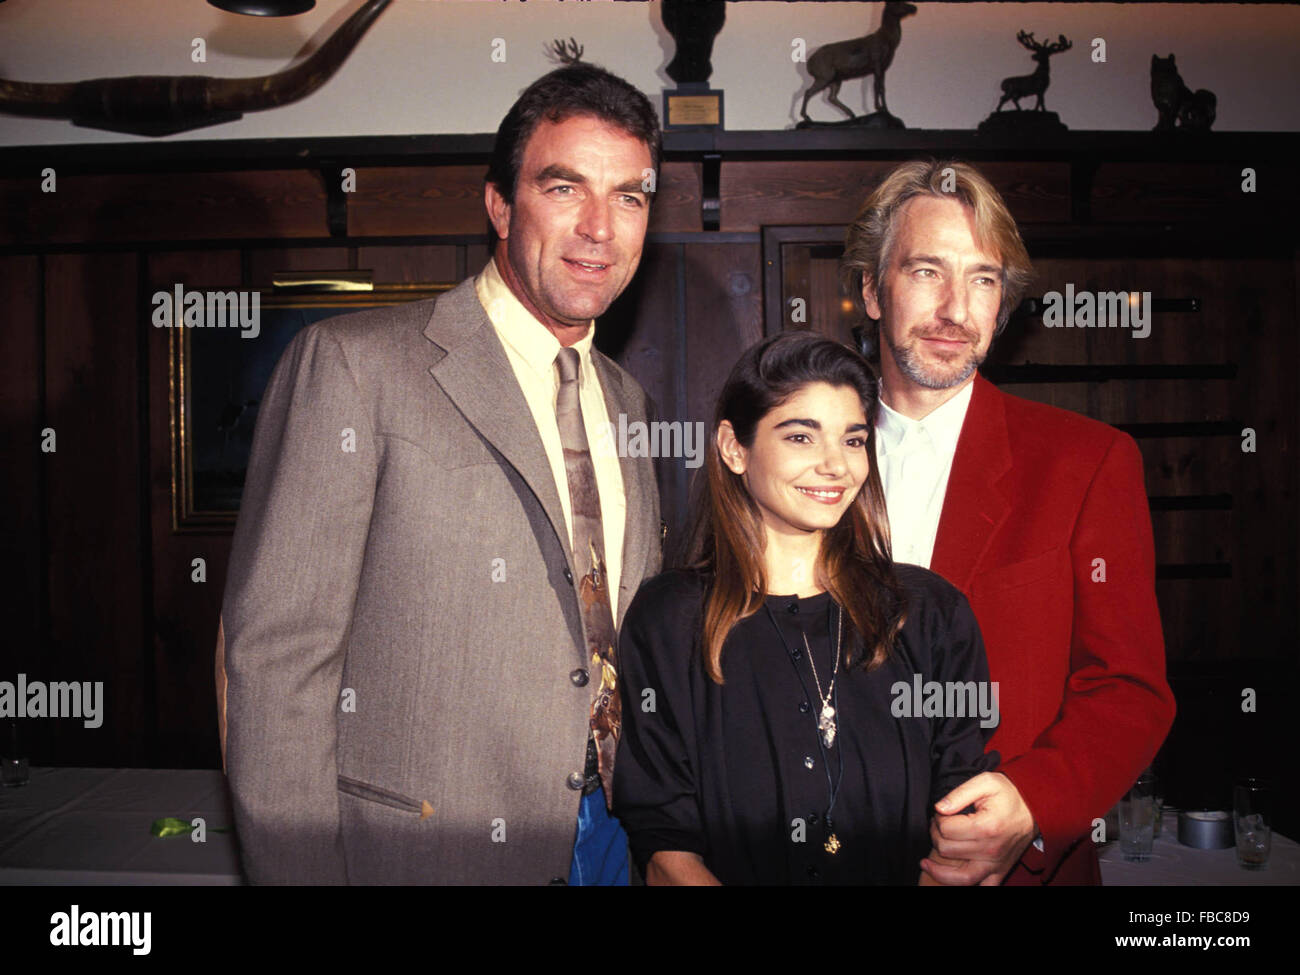 File. 14th Jan, 2016. Actor ALAN RICKMAN, known for films including Harry Potter, Die Hard and Robin Hood: Prince - Stock Image